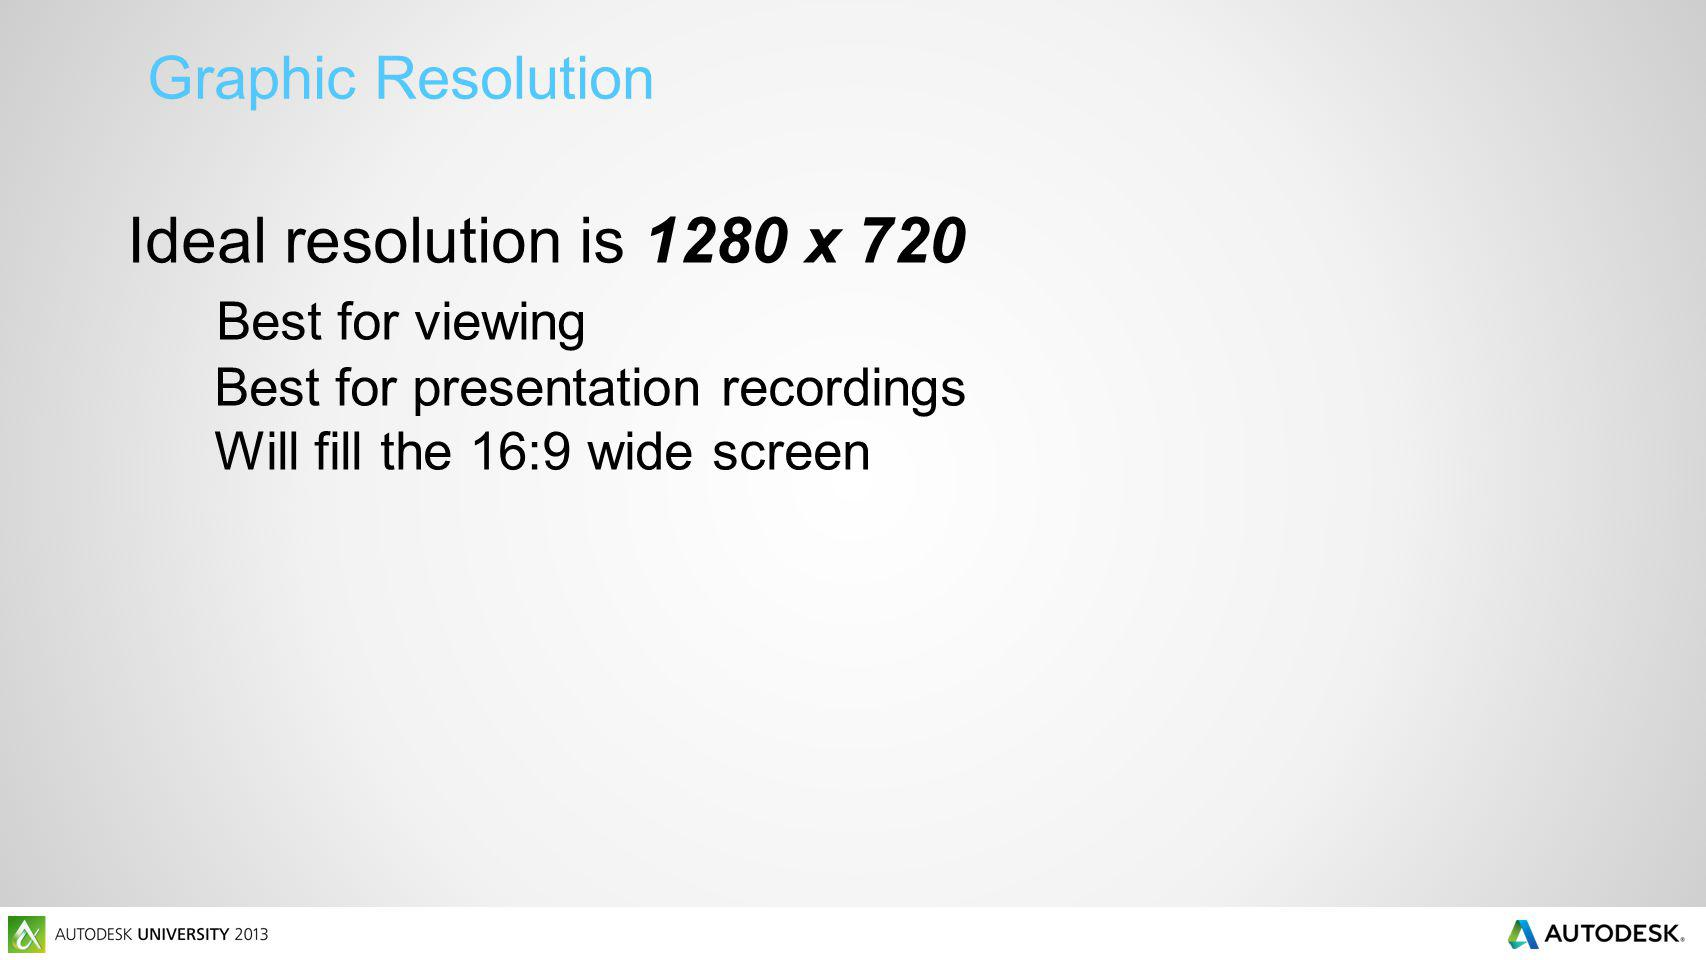 Graphic Resolution Ideal resolution is 1280 x 720 Best for viewing Best for presentation recordings Will fill the 16:9 wide screen